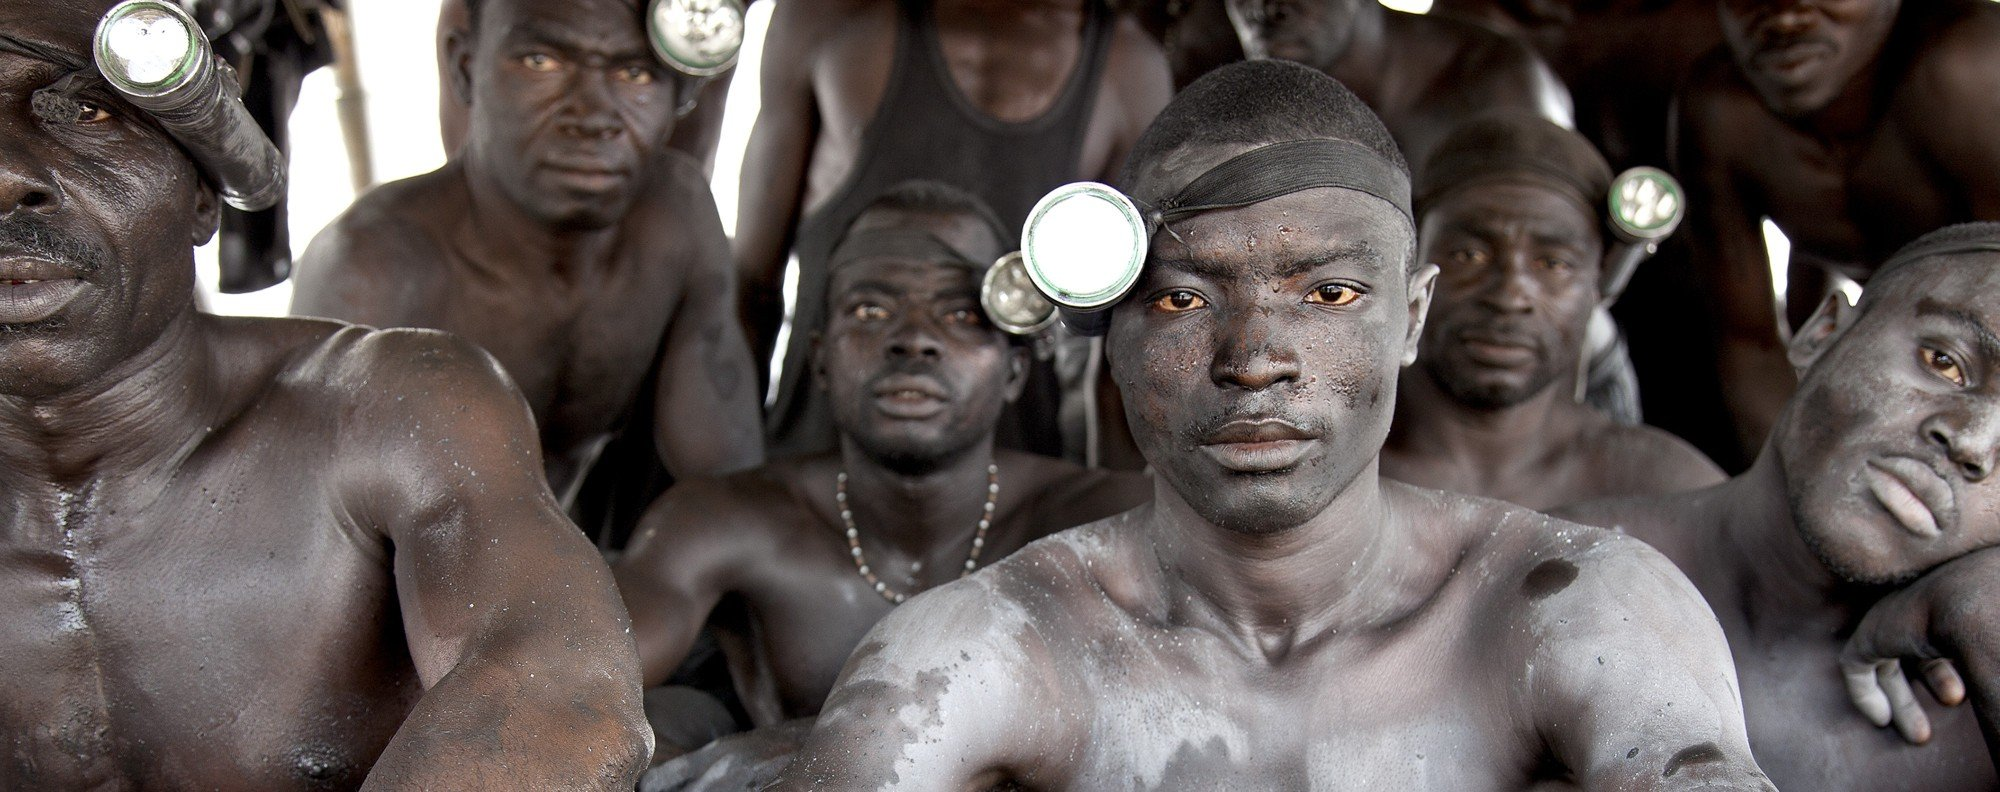 Men enslaved in illegal gold mining in Ghana. Picture: Lisa Kristine